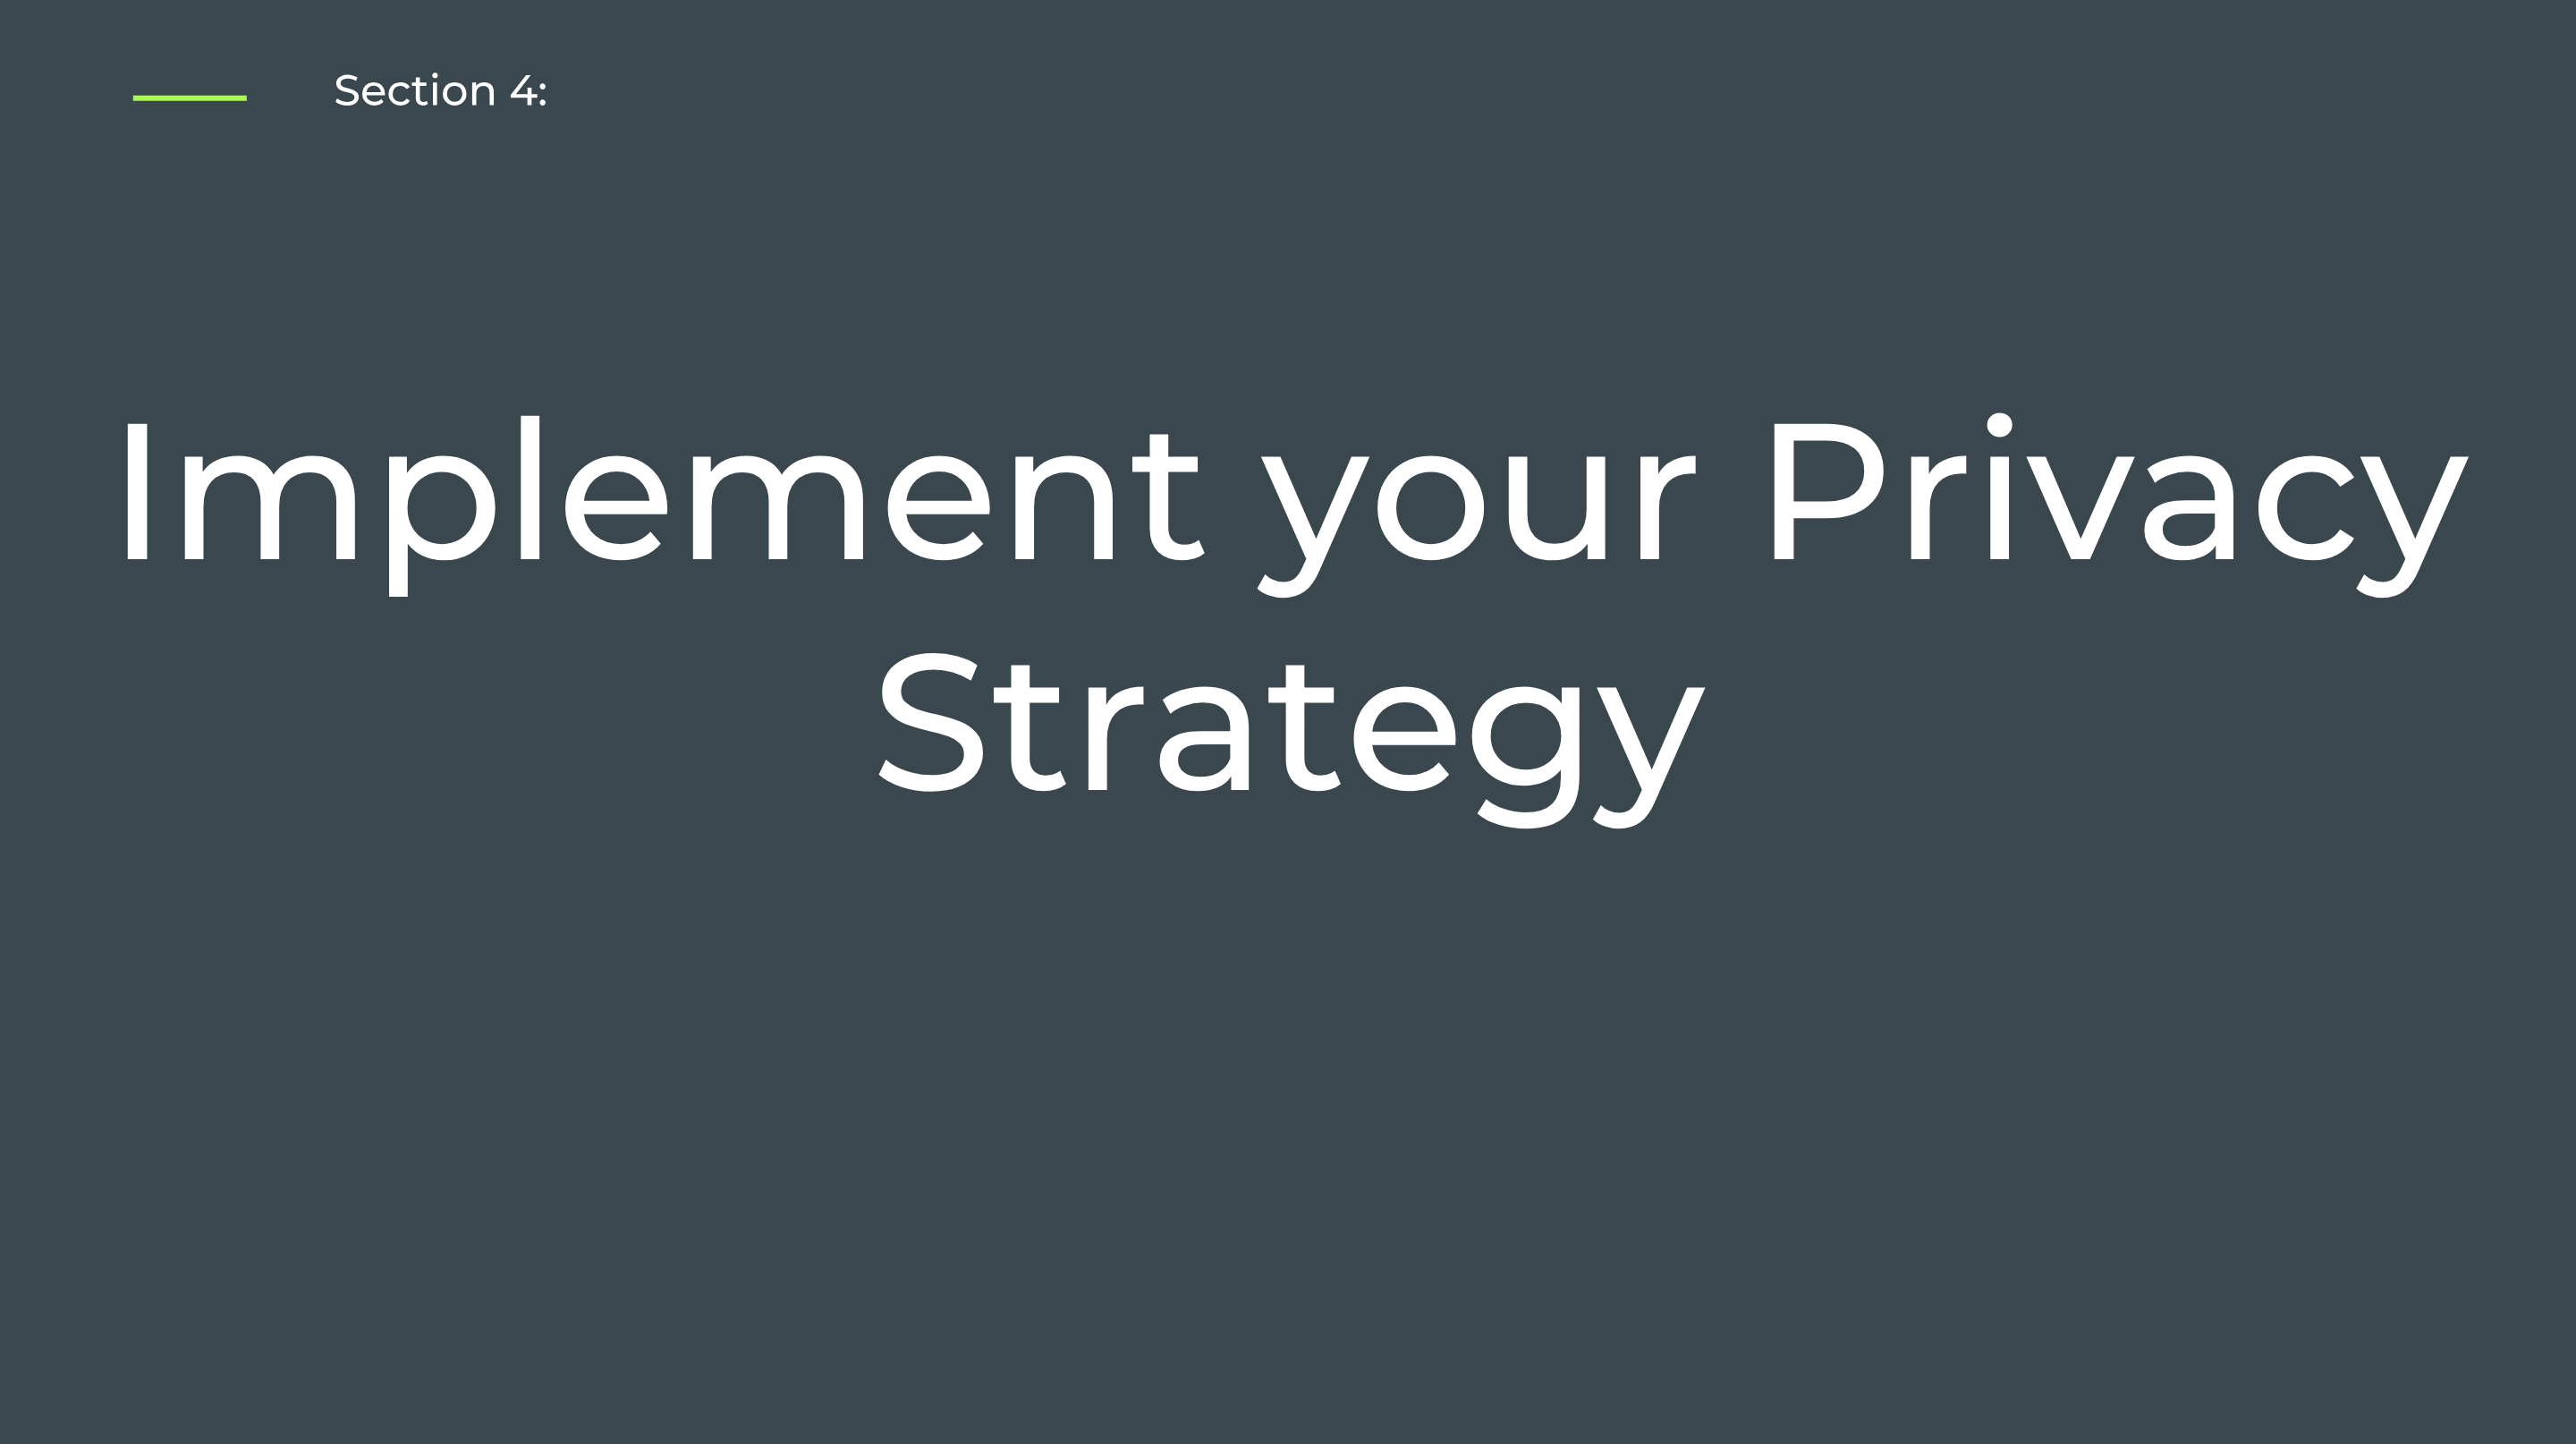 Section 4: Implement your Privacy Strategy - Self-Paced Onboarding for Admins